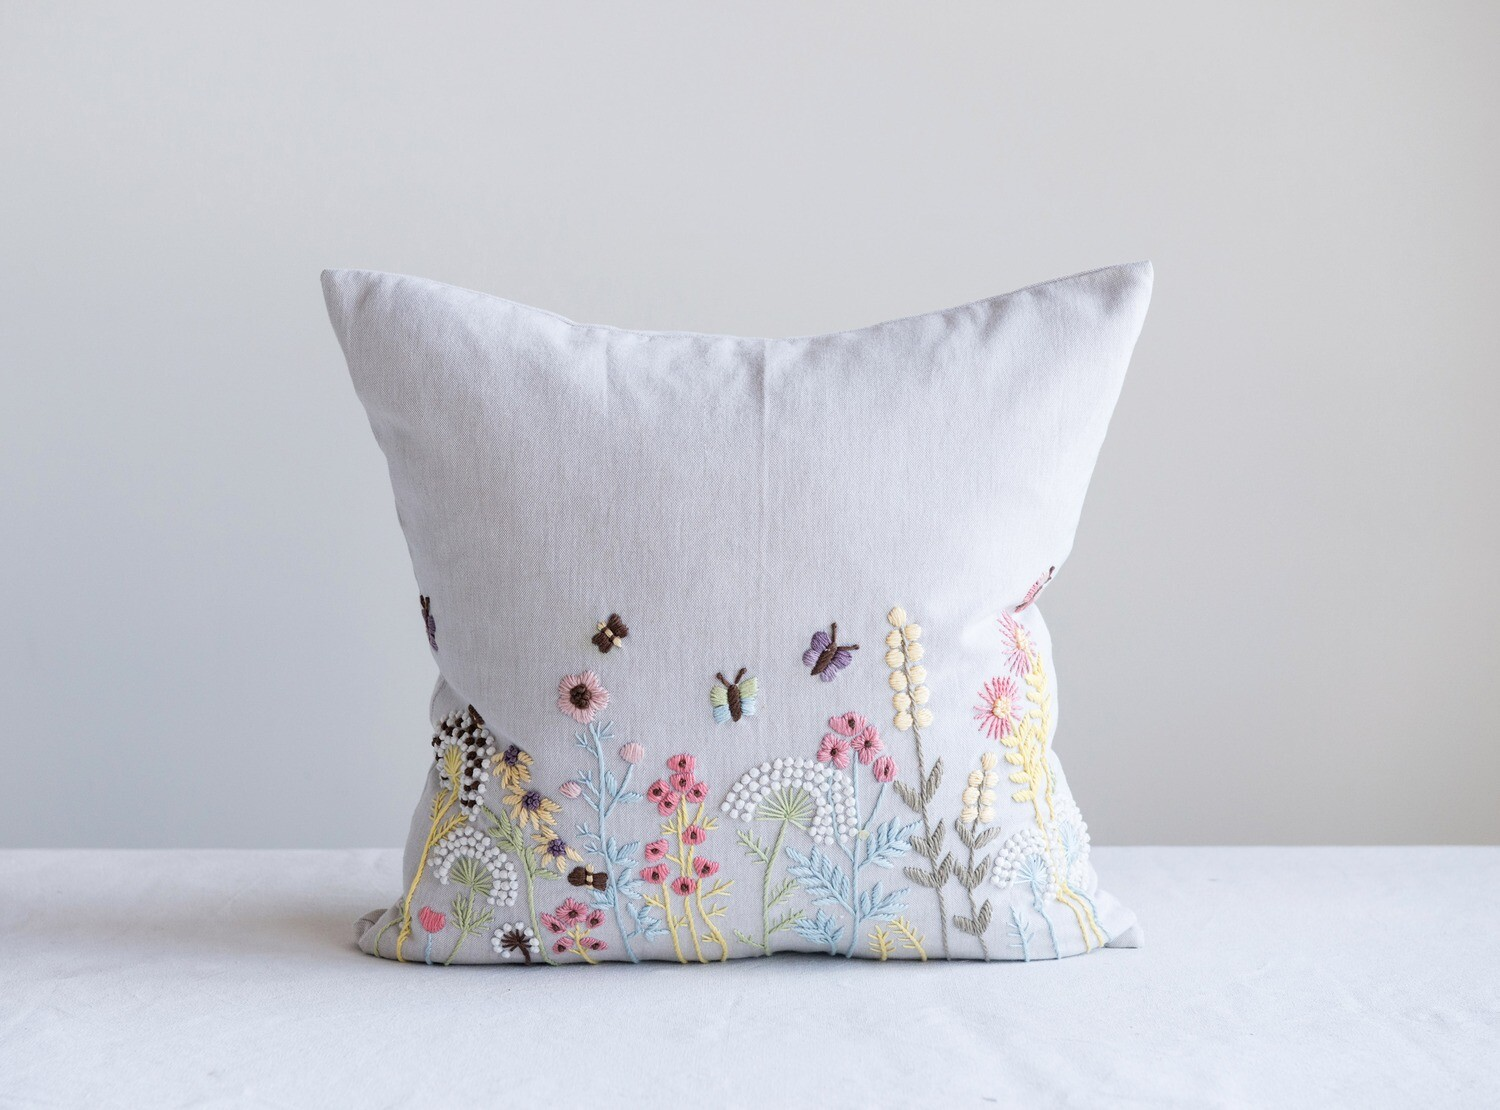 Square Pillow with Embroidered Multicolor French Knot Flowers